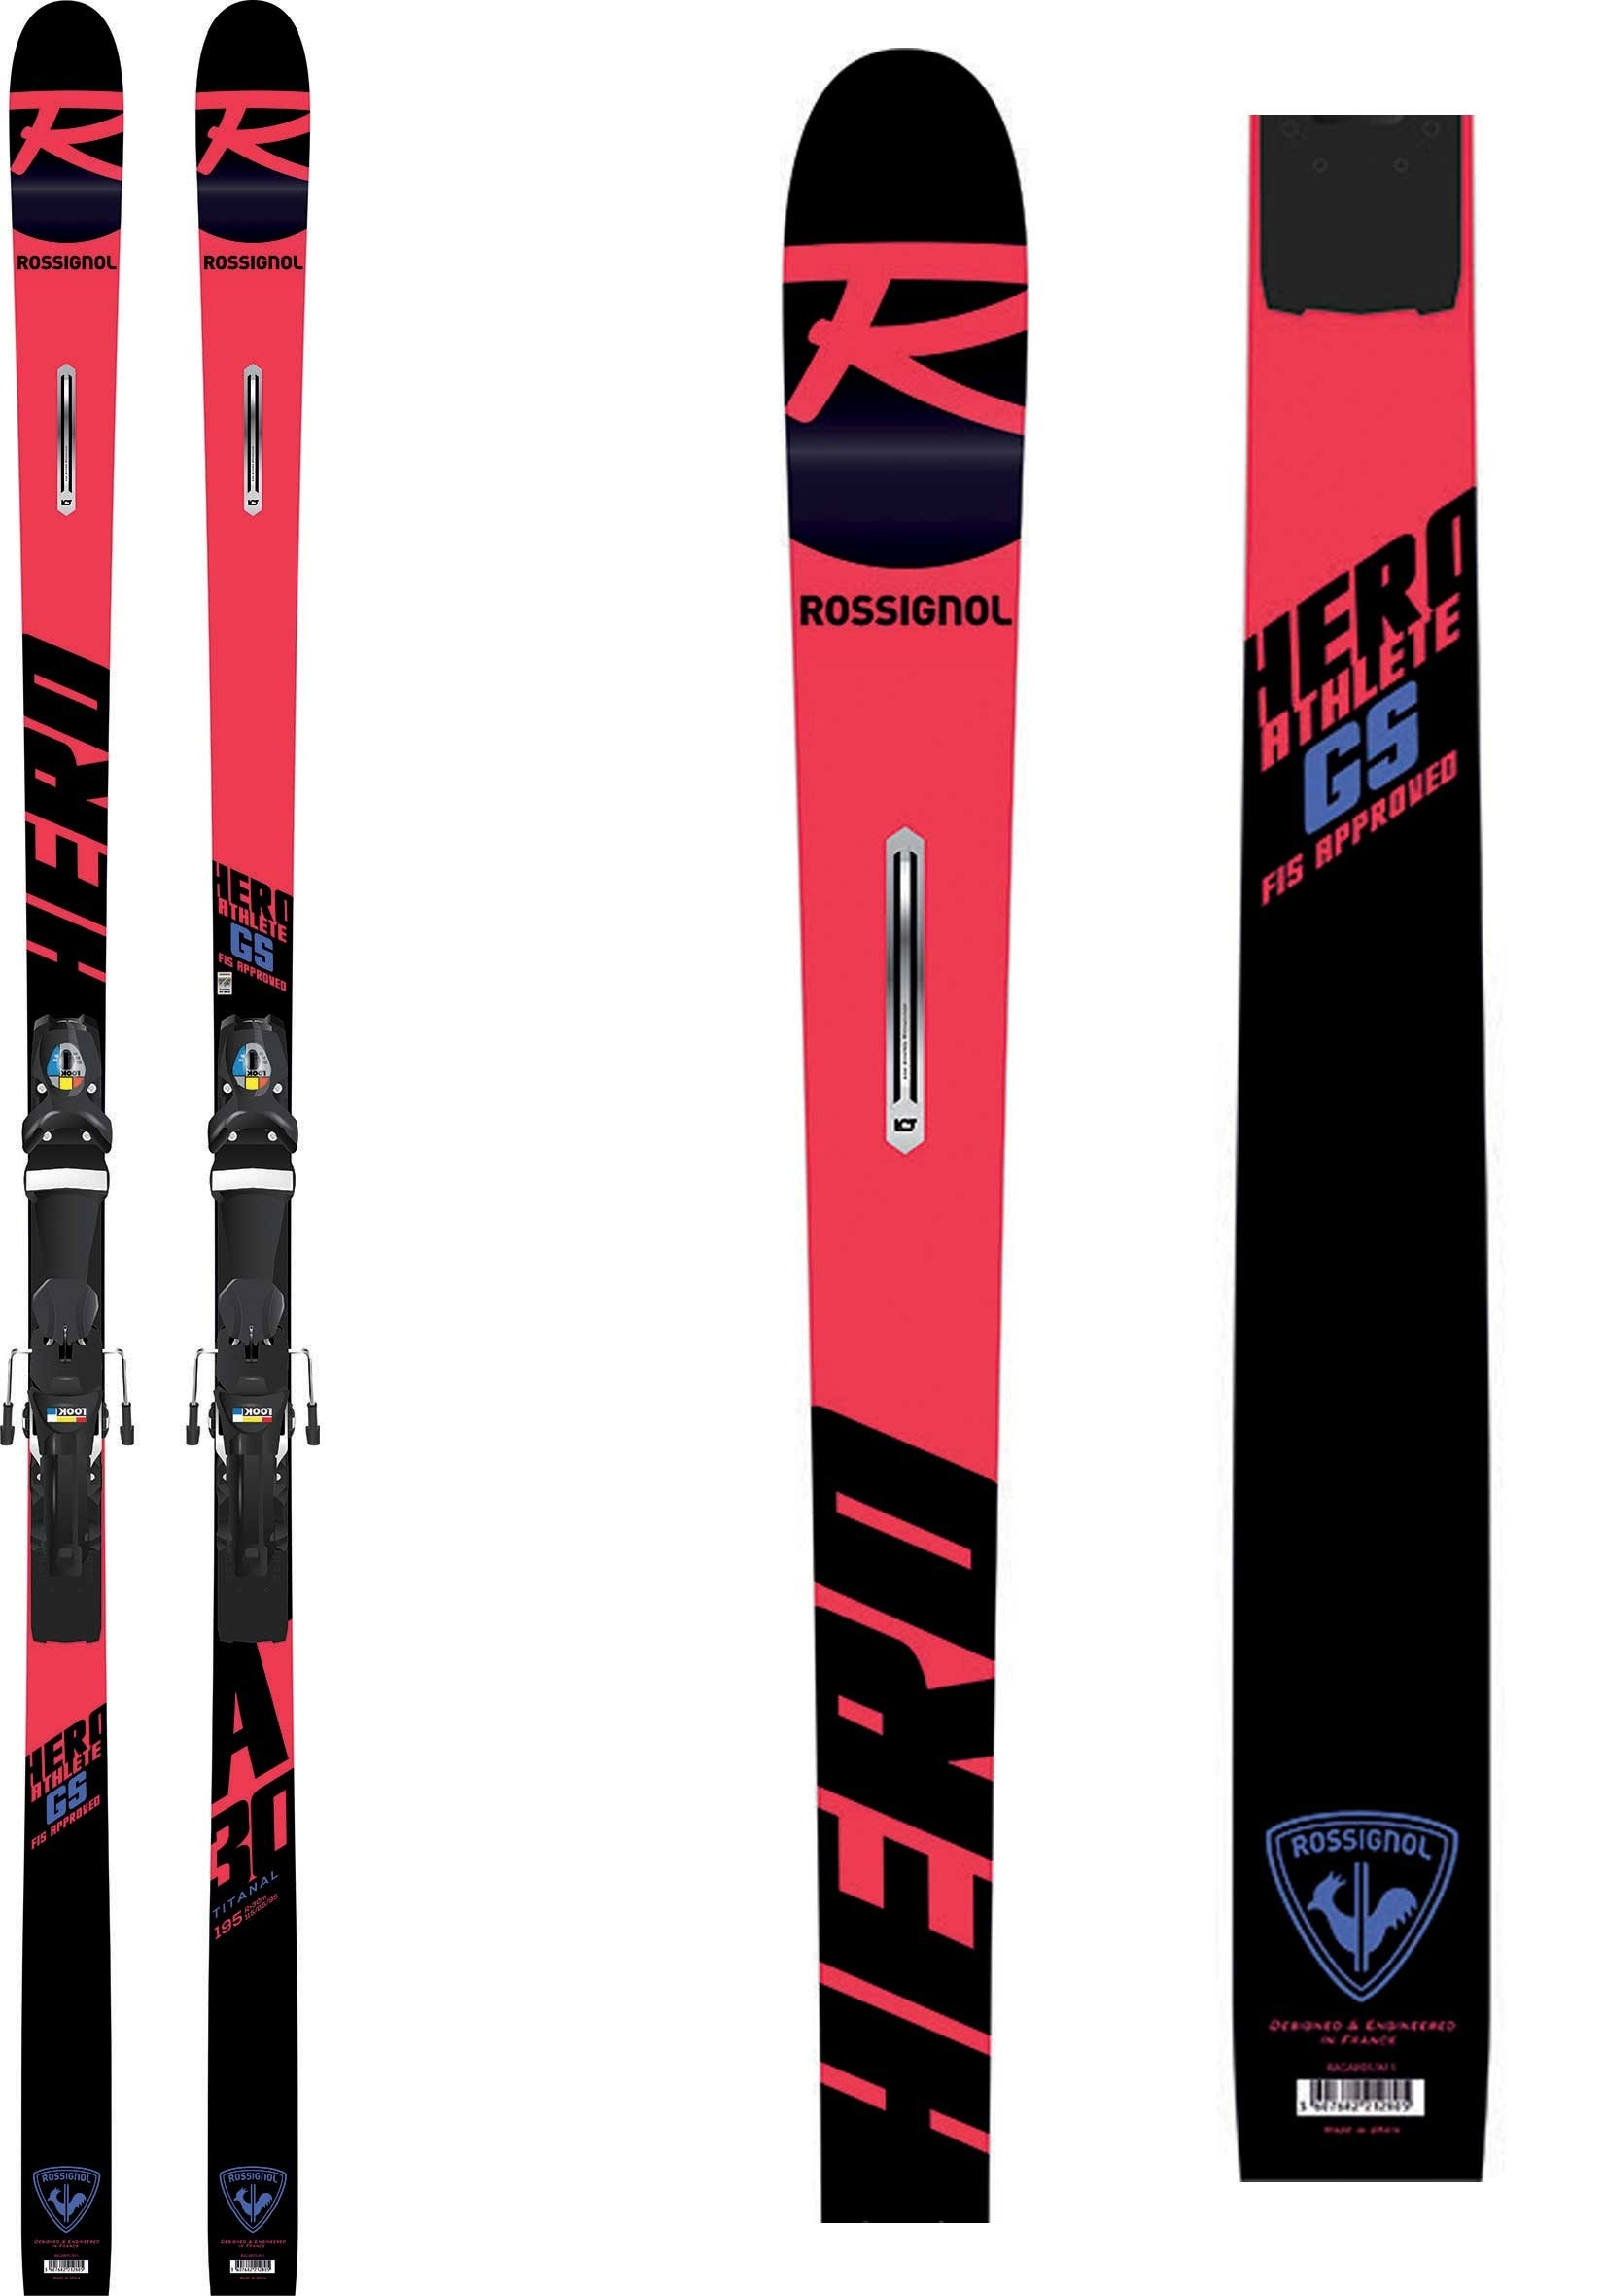 rossignol skis hero athlete fis gs 2019